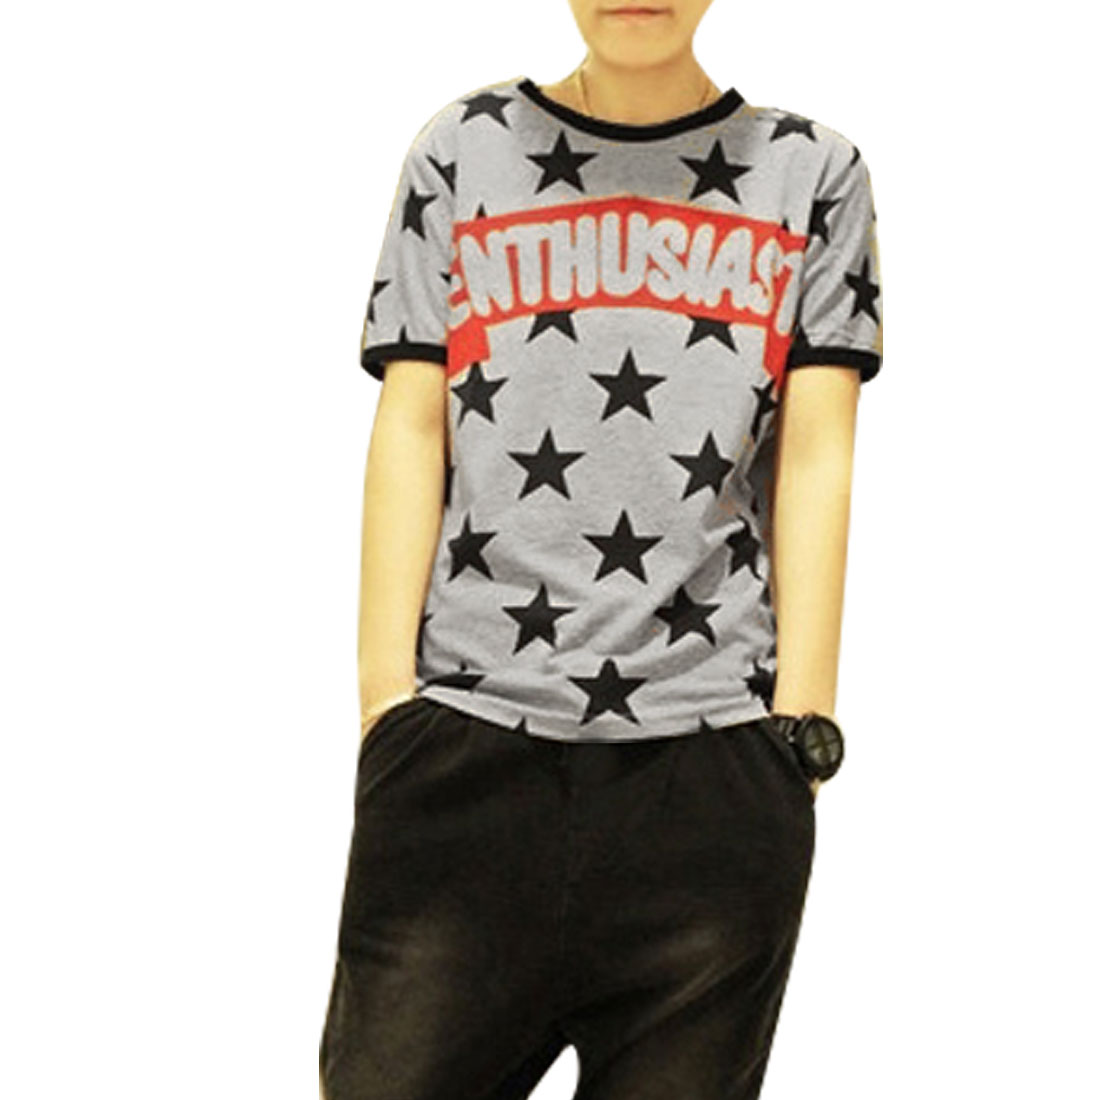 Handsome Men Short Sleeves Stars Embellished T-Shirt Black Gray S